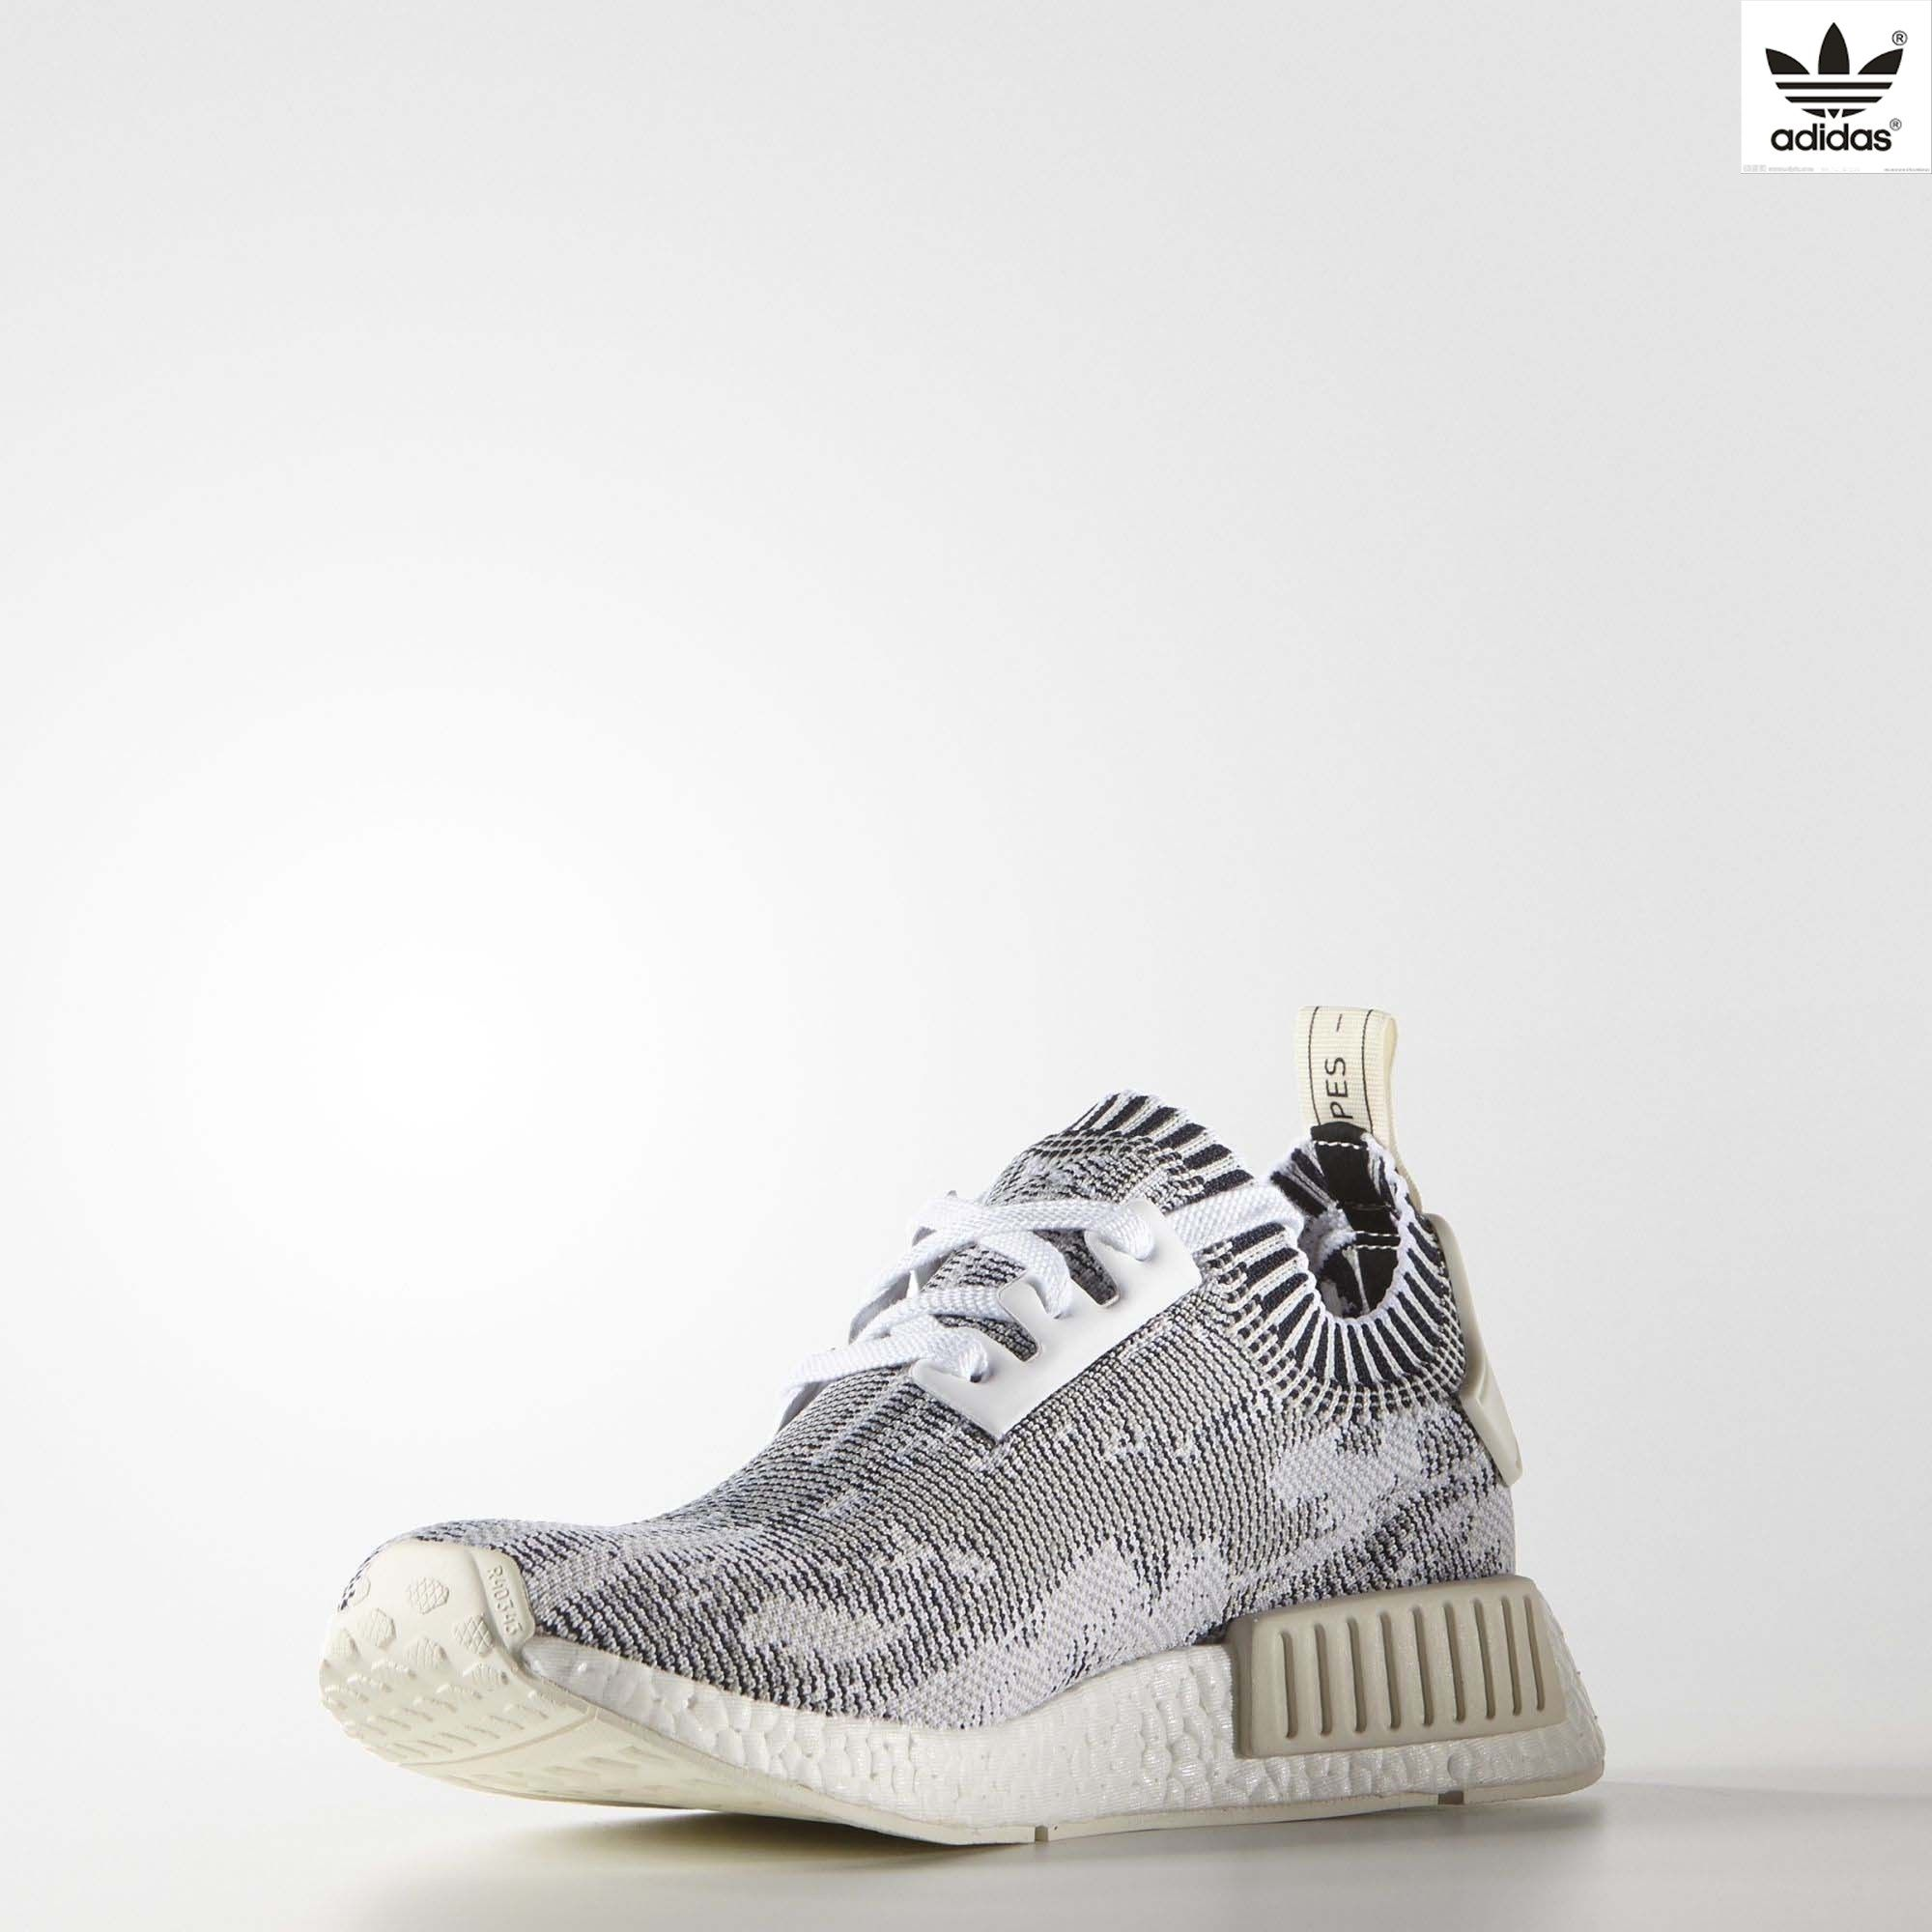 ce4b882eb Adidas NMD R1 Primeknit White Camo - Mens Legend BlueClear OnyxWhite0 on  the lookout for limited offer